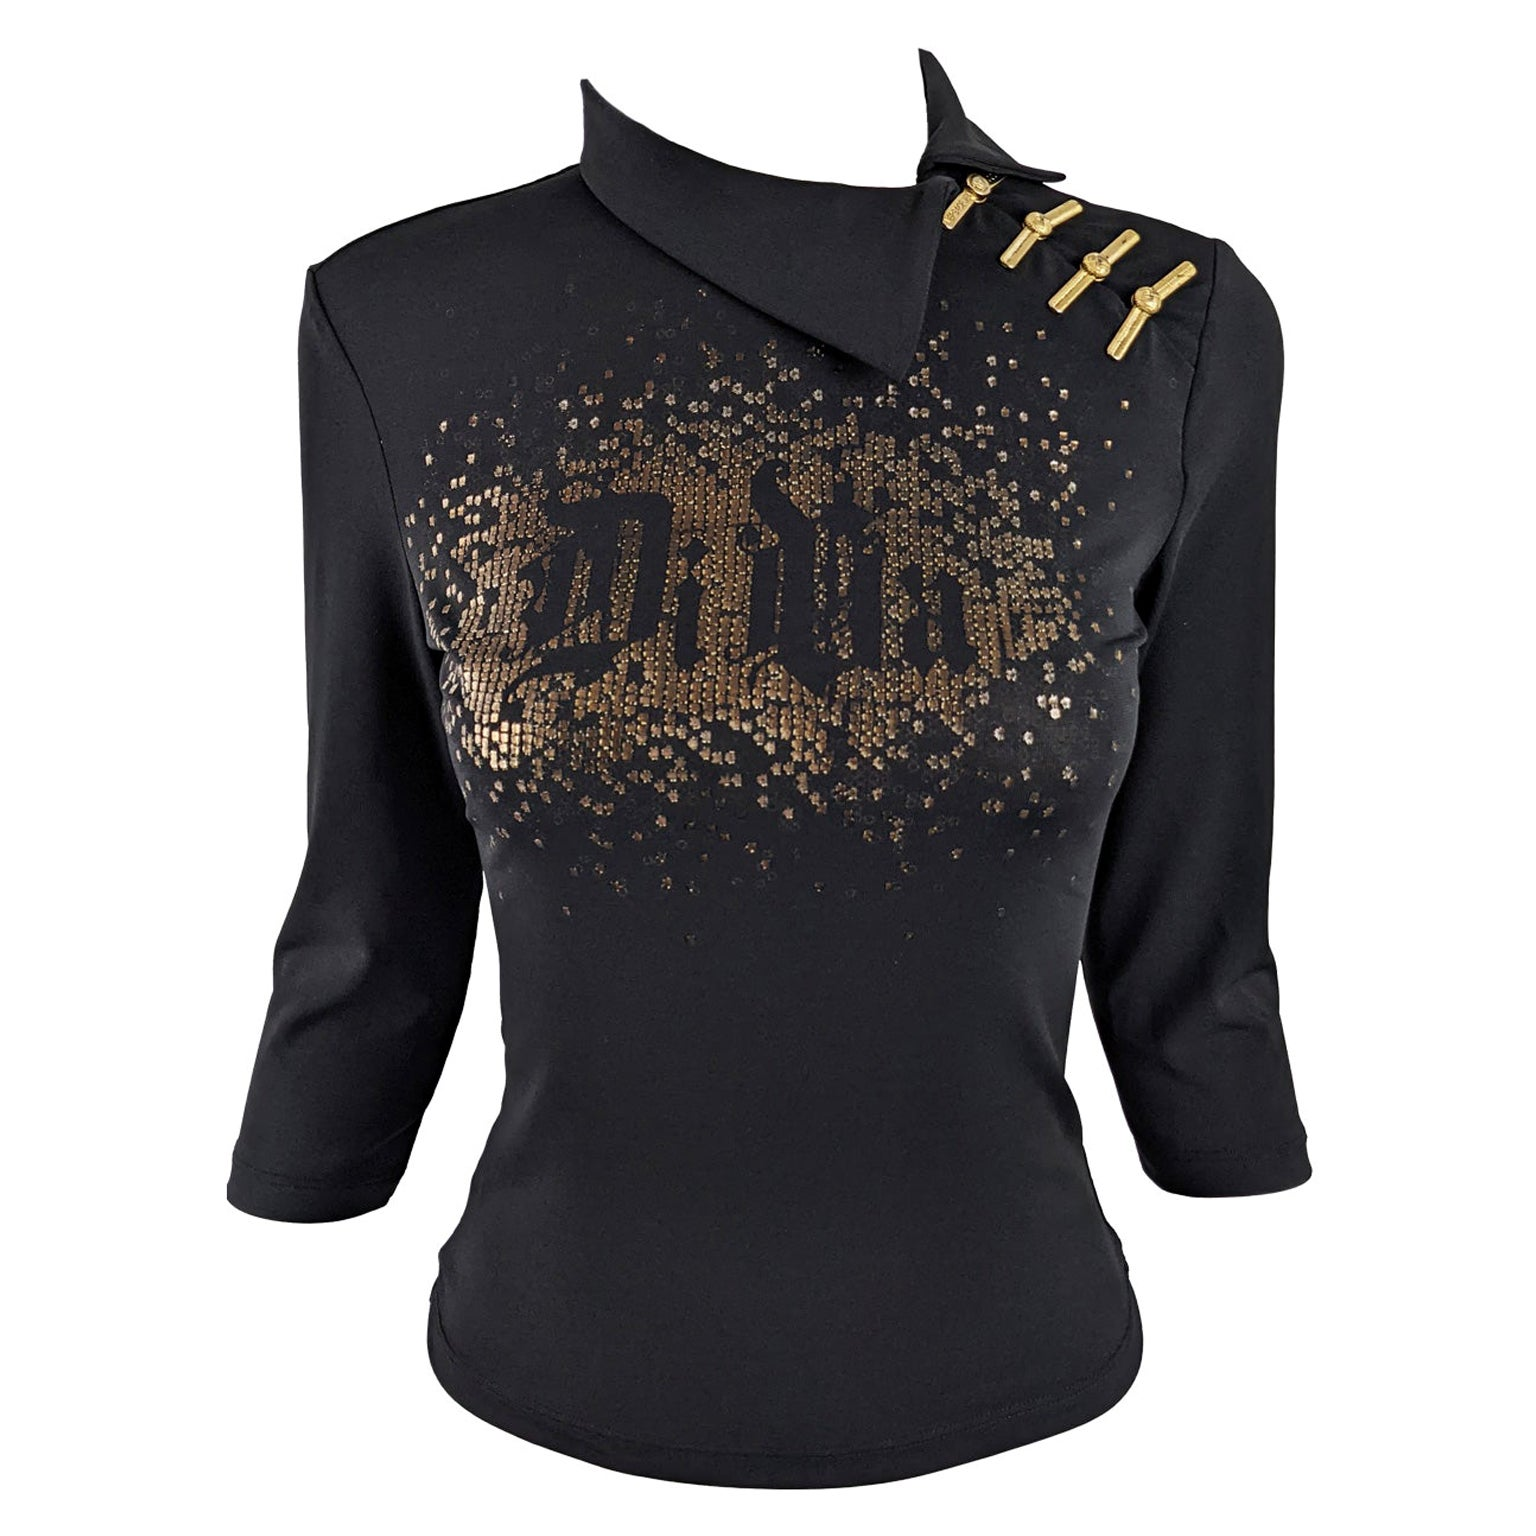 Versace Vintage y2k 'Diva' Print Black & Gold Asian Style Party Top, 2000s